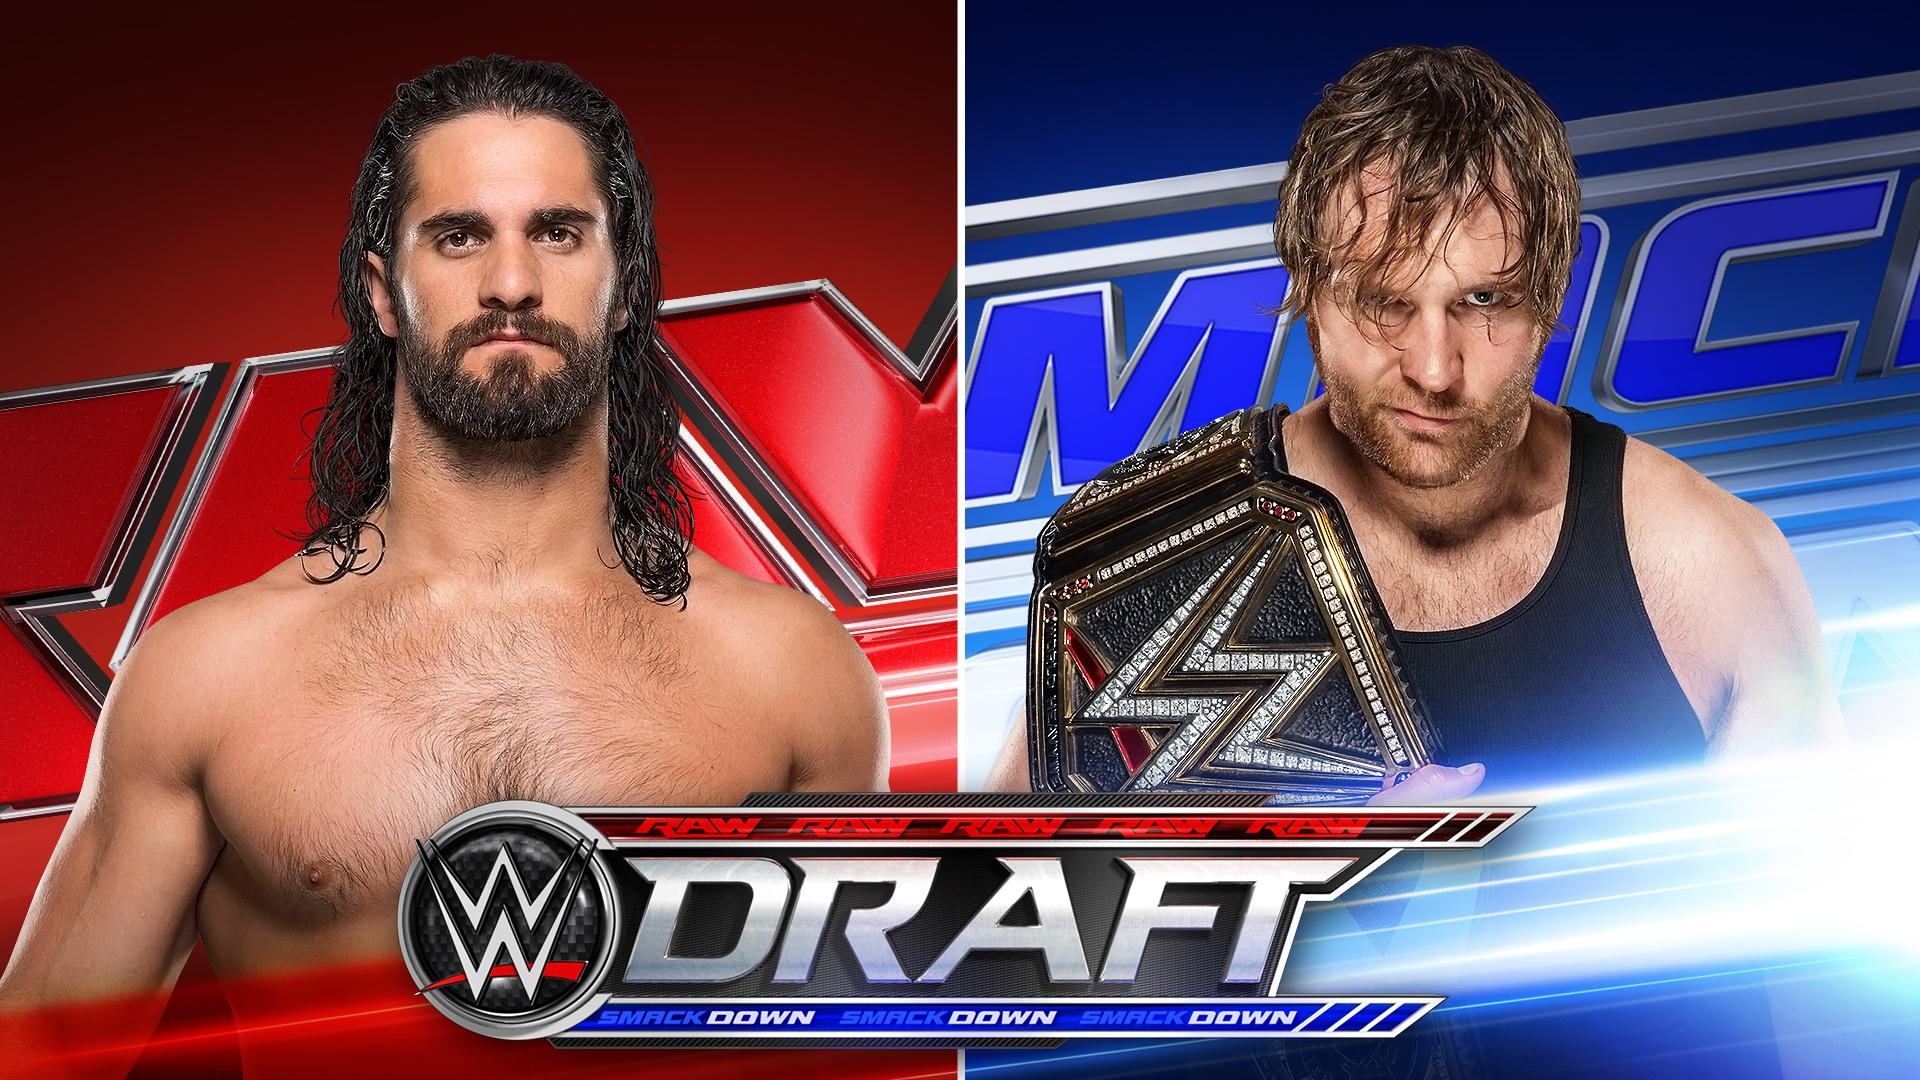 The WWE Draft has come and gone, and we now know the rosters for Raw and SmackDown. Though the titles exclusive to each show are unclear — as are any new titles for tag, main event, and women's divisions — wrestling fans can generally get an idea of what their Monday and Tuesday nights will look like for the foreseeable future.